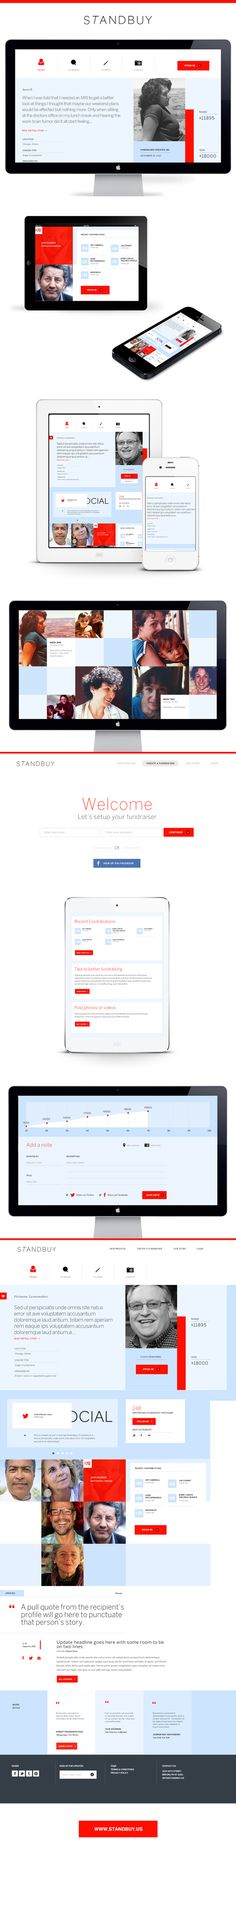 Standbuy Fundraiser Platform Website Design | Multi-Device Responsive Layout